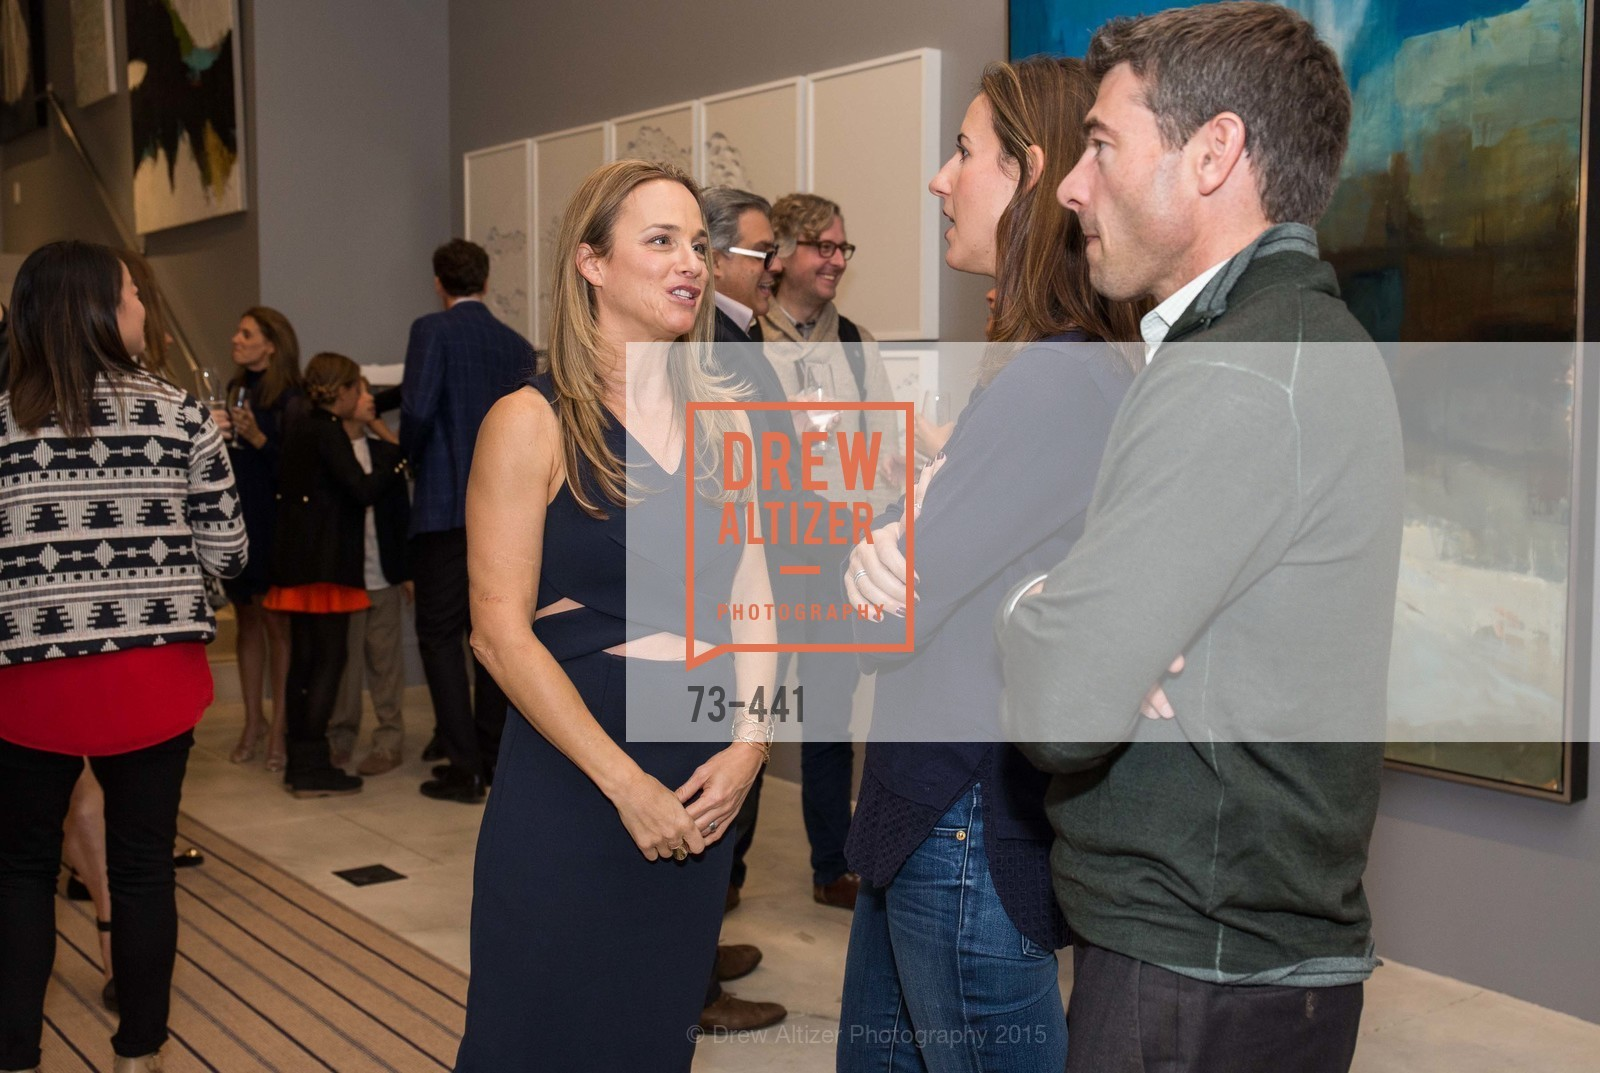 Stephanie Breitbard, Stephanie Breitbard Fine Arts San Francisco Opening, Stephanie Breitbard Fine Arts. 843 Montgomery St, November 5th, 2015,Drew Altizer, Drew Altizer Photography, full-service agency, private events, San Francisco photographer, photographer california